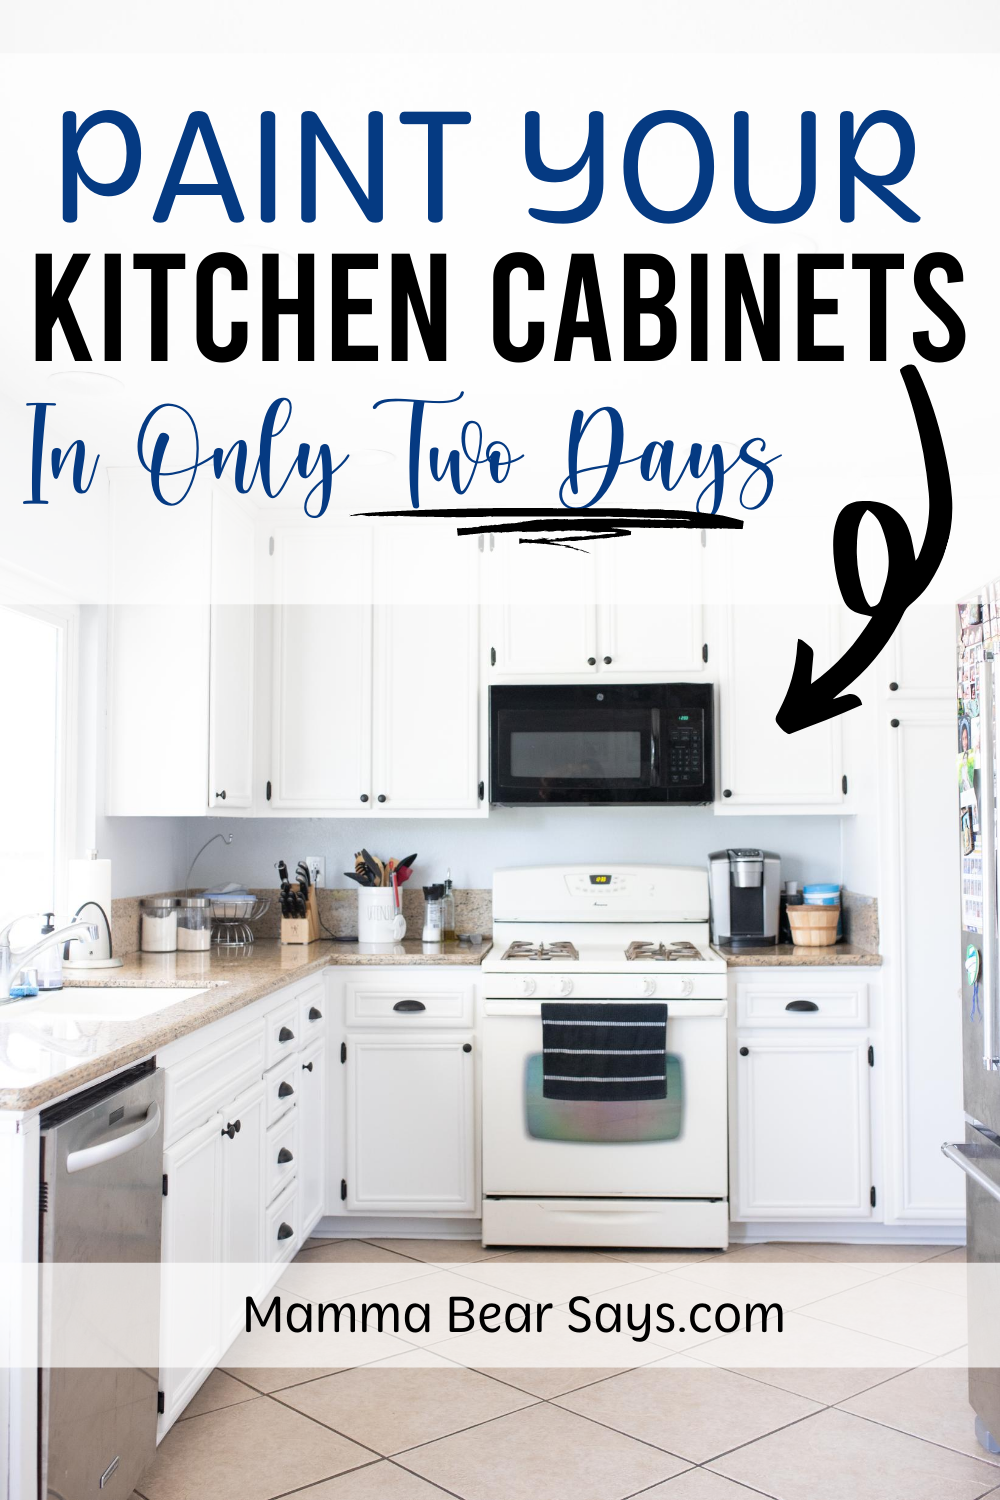 how to paint kitchen cabinets in only two days